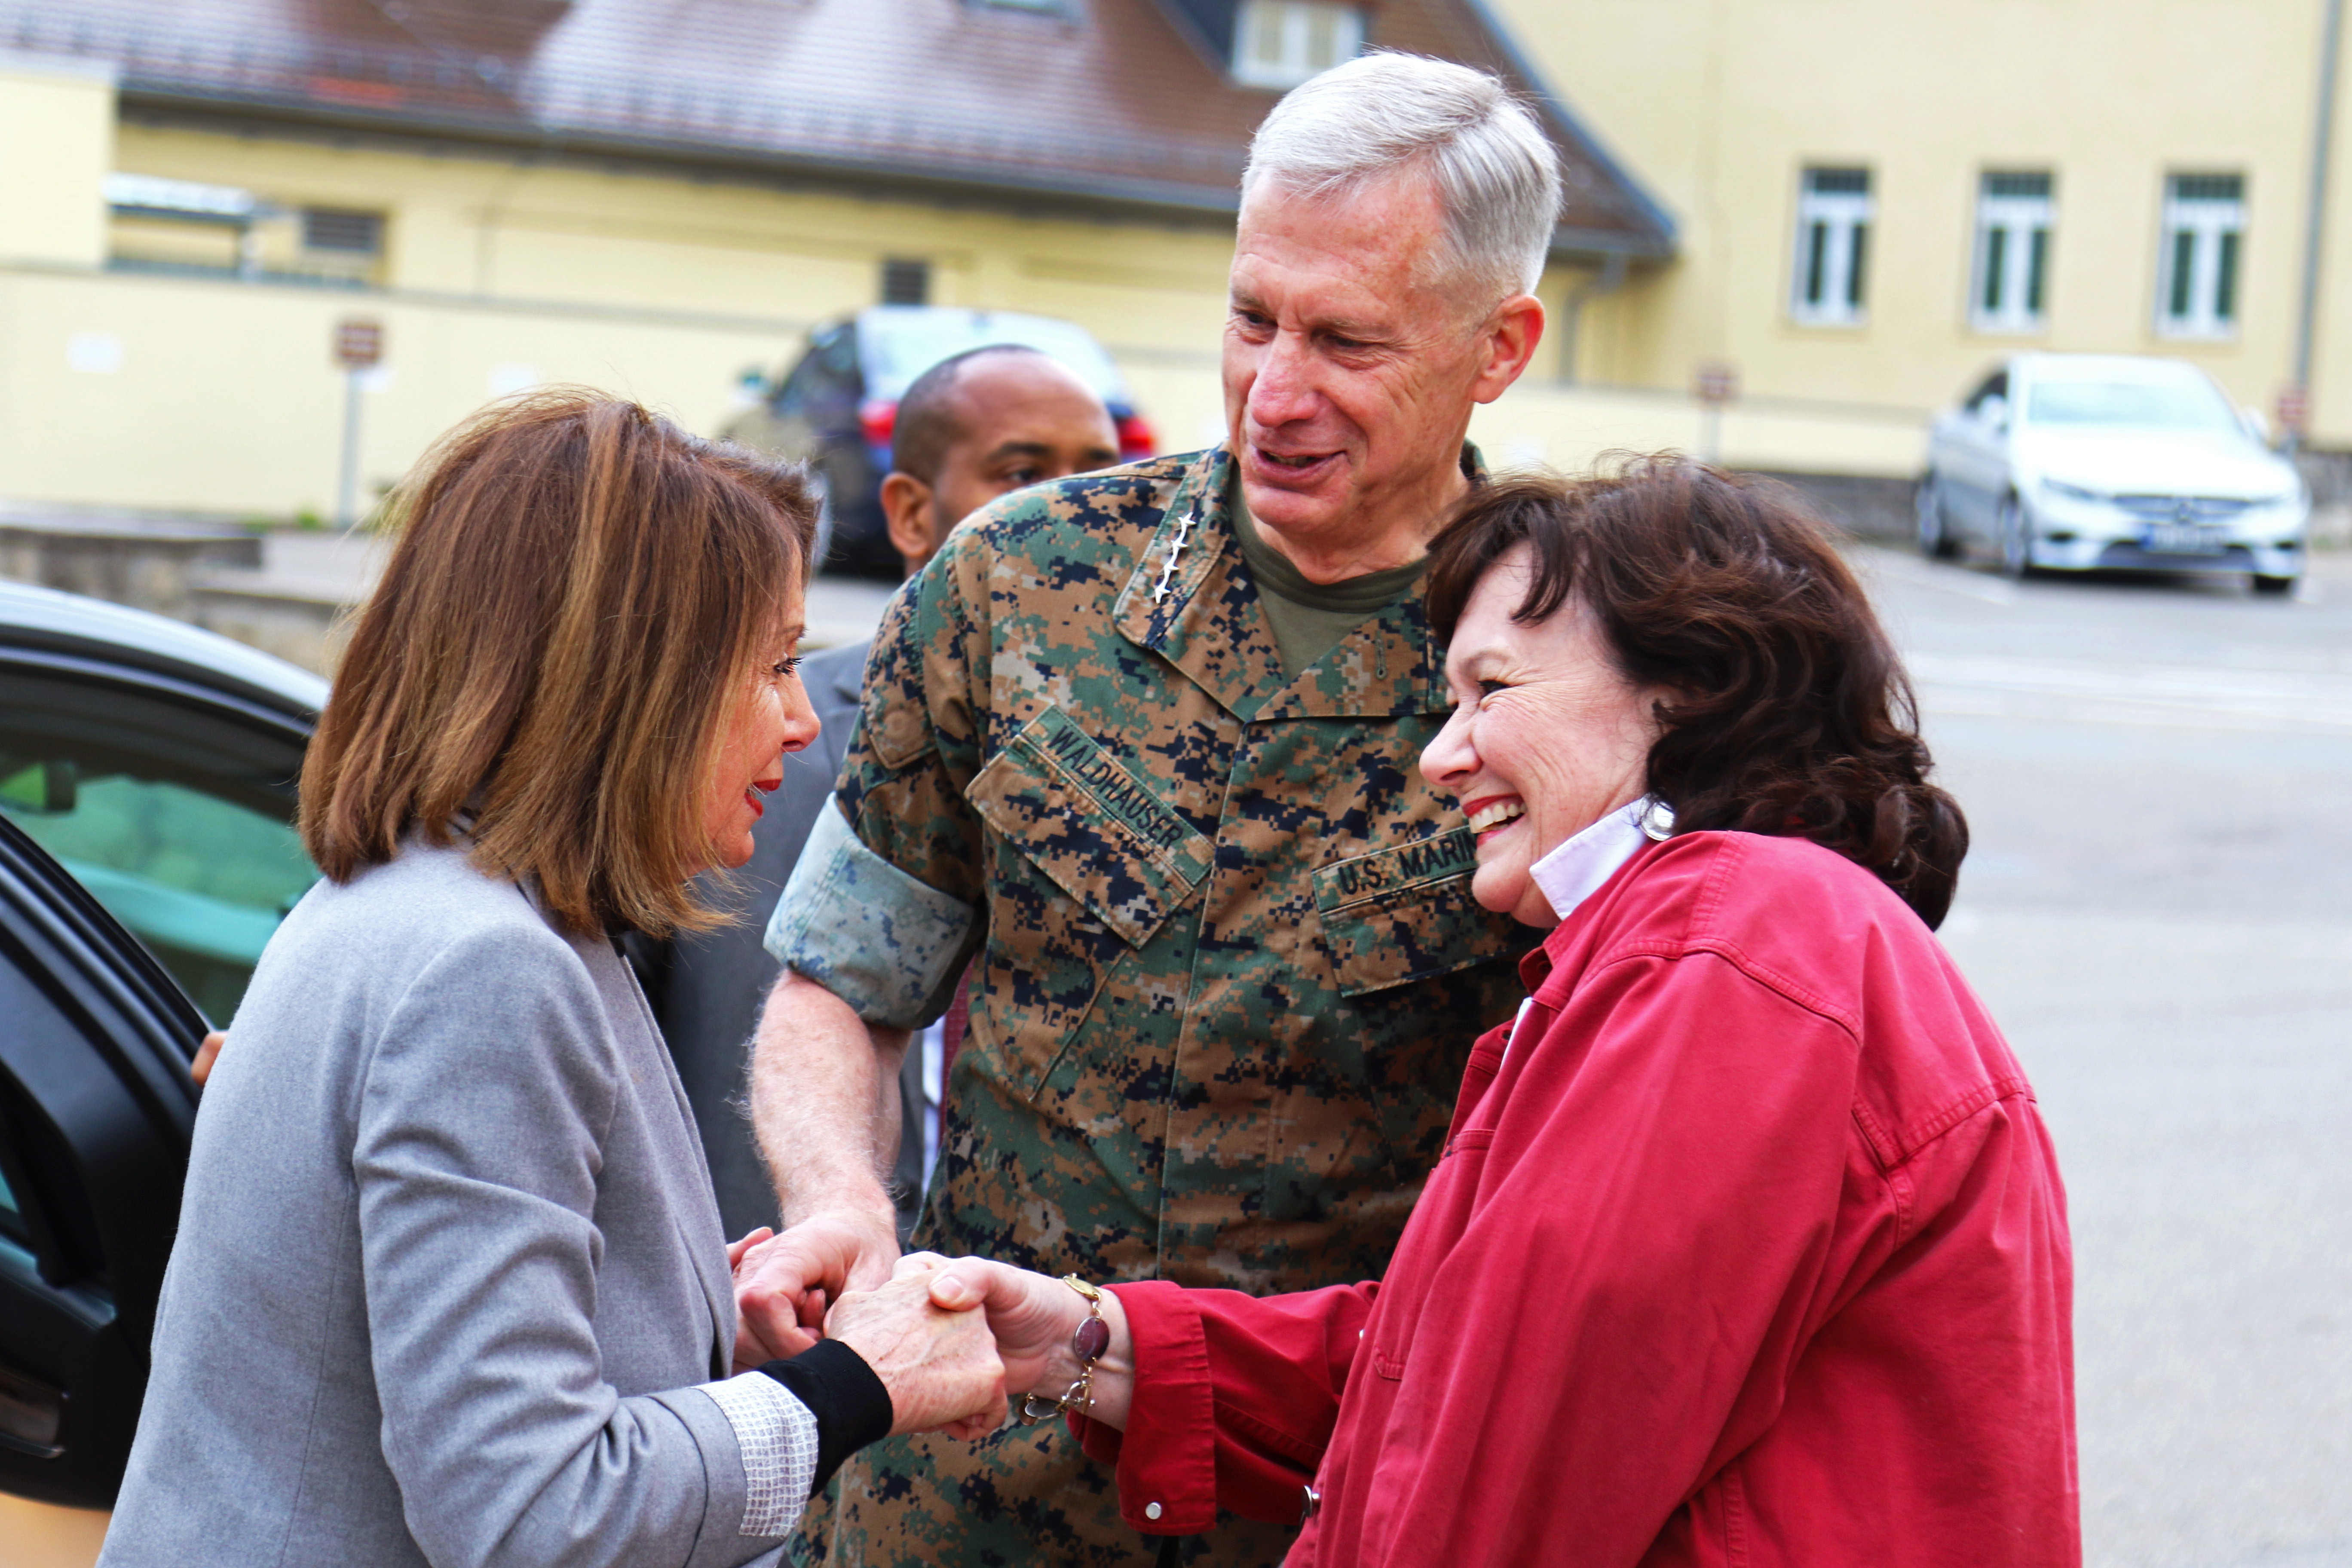 Marine Corps Gen. Thomas Waldhauser, commander, U.S. Africa Command, and his wife Gail Waldhauser greet Speaker of the House Nancy Pelosi during a visit April 13, 2019 in Stuttgart, Germany. Pelosi along with a congressional delegation visited AFRICOM to gain insight about the command's operations and activities supporting the U.S. strategy for Africa. (U.S. Navy photo by Mass Communication Specialist 1st Class Christopher Hurd/Released)